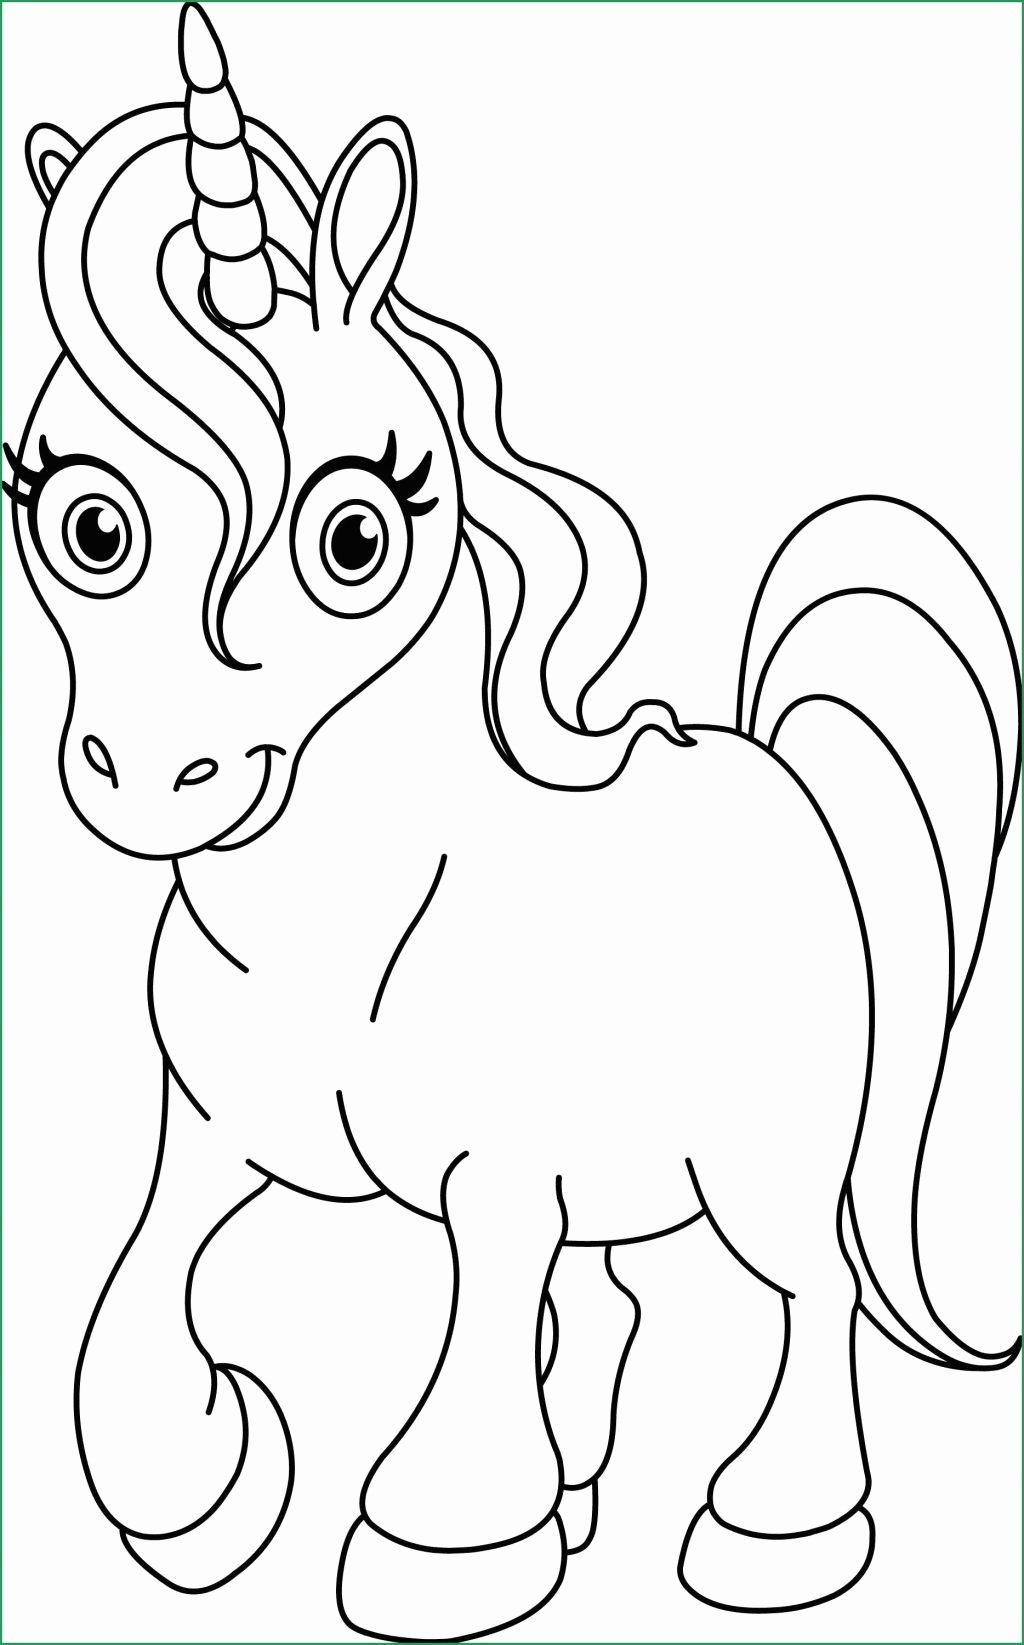 Christmas Horse Coloring Page Unicorn Coloring Pages Horse